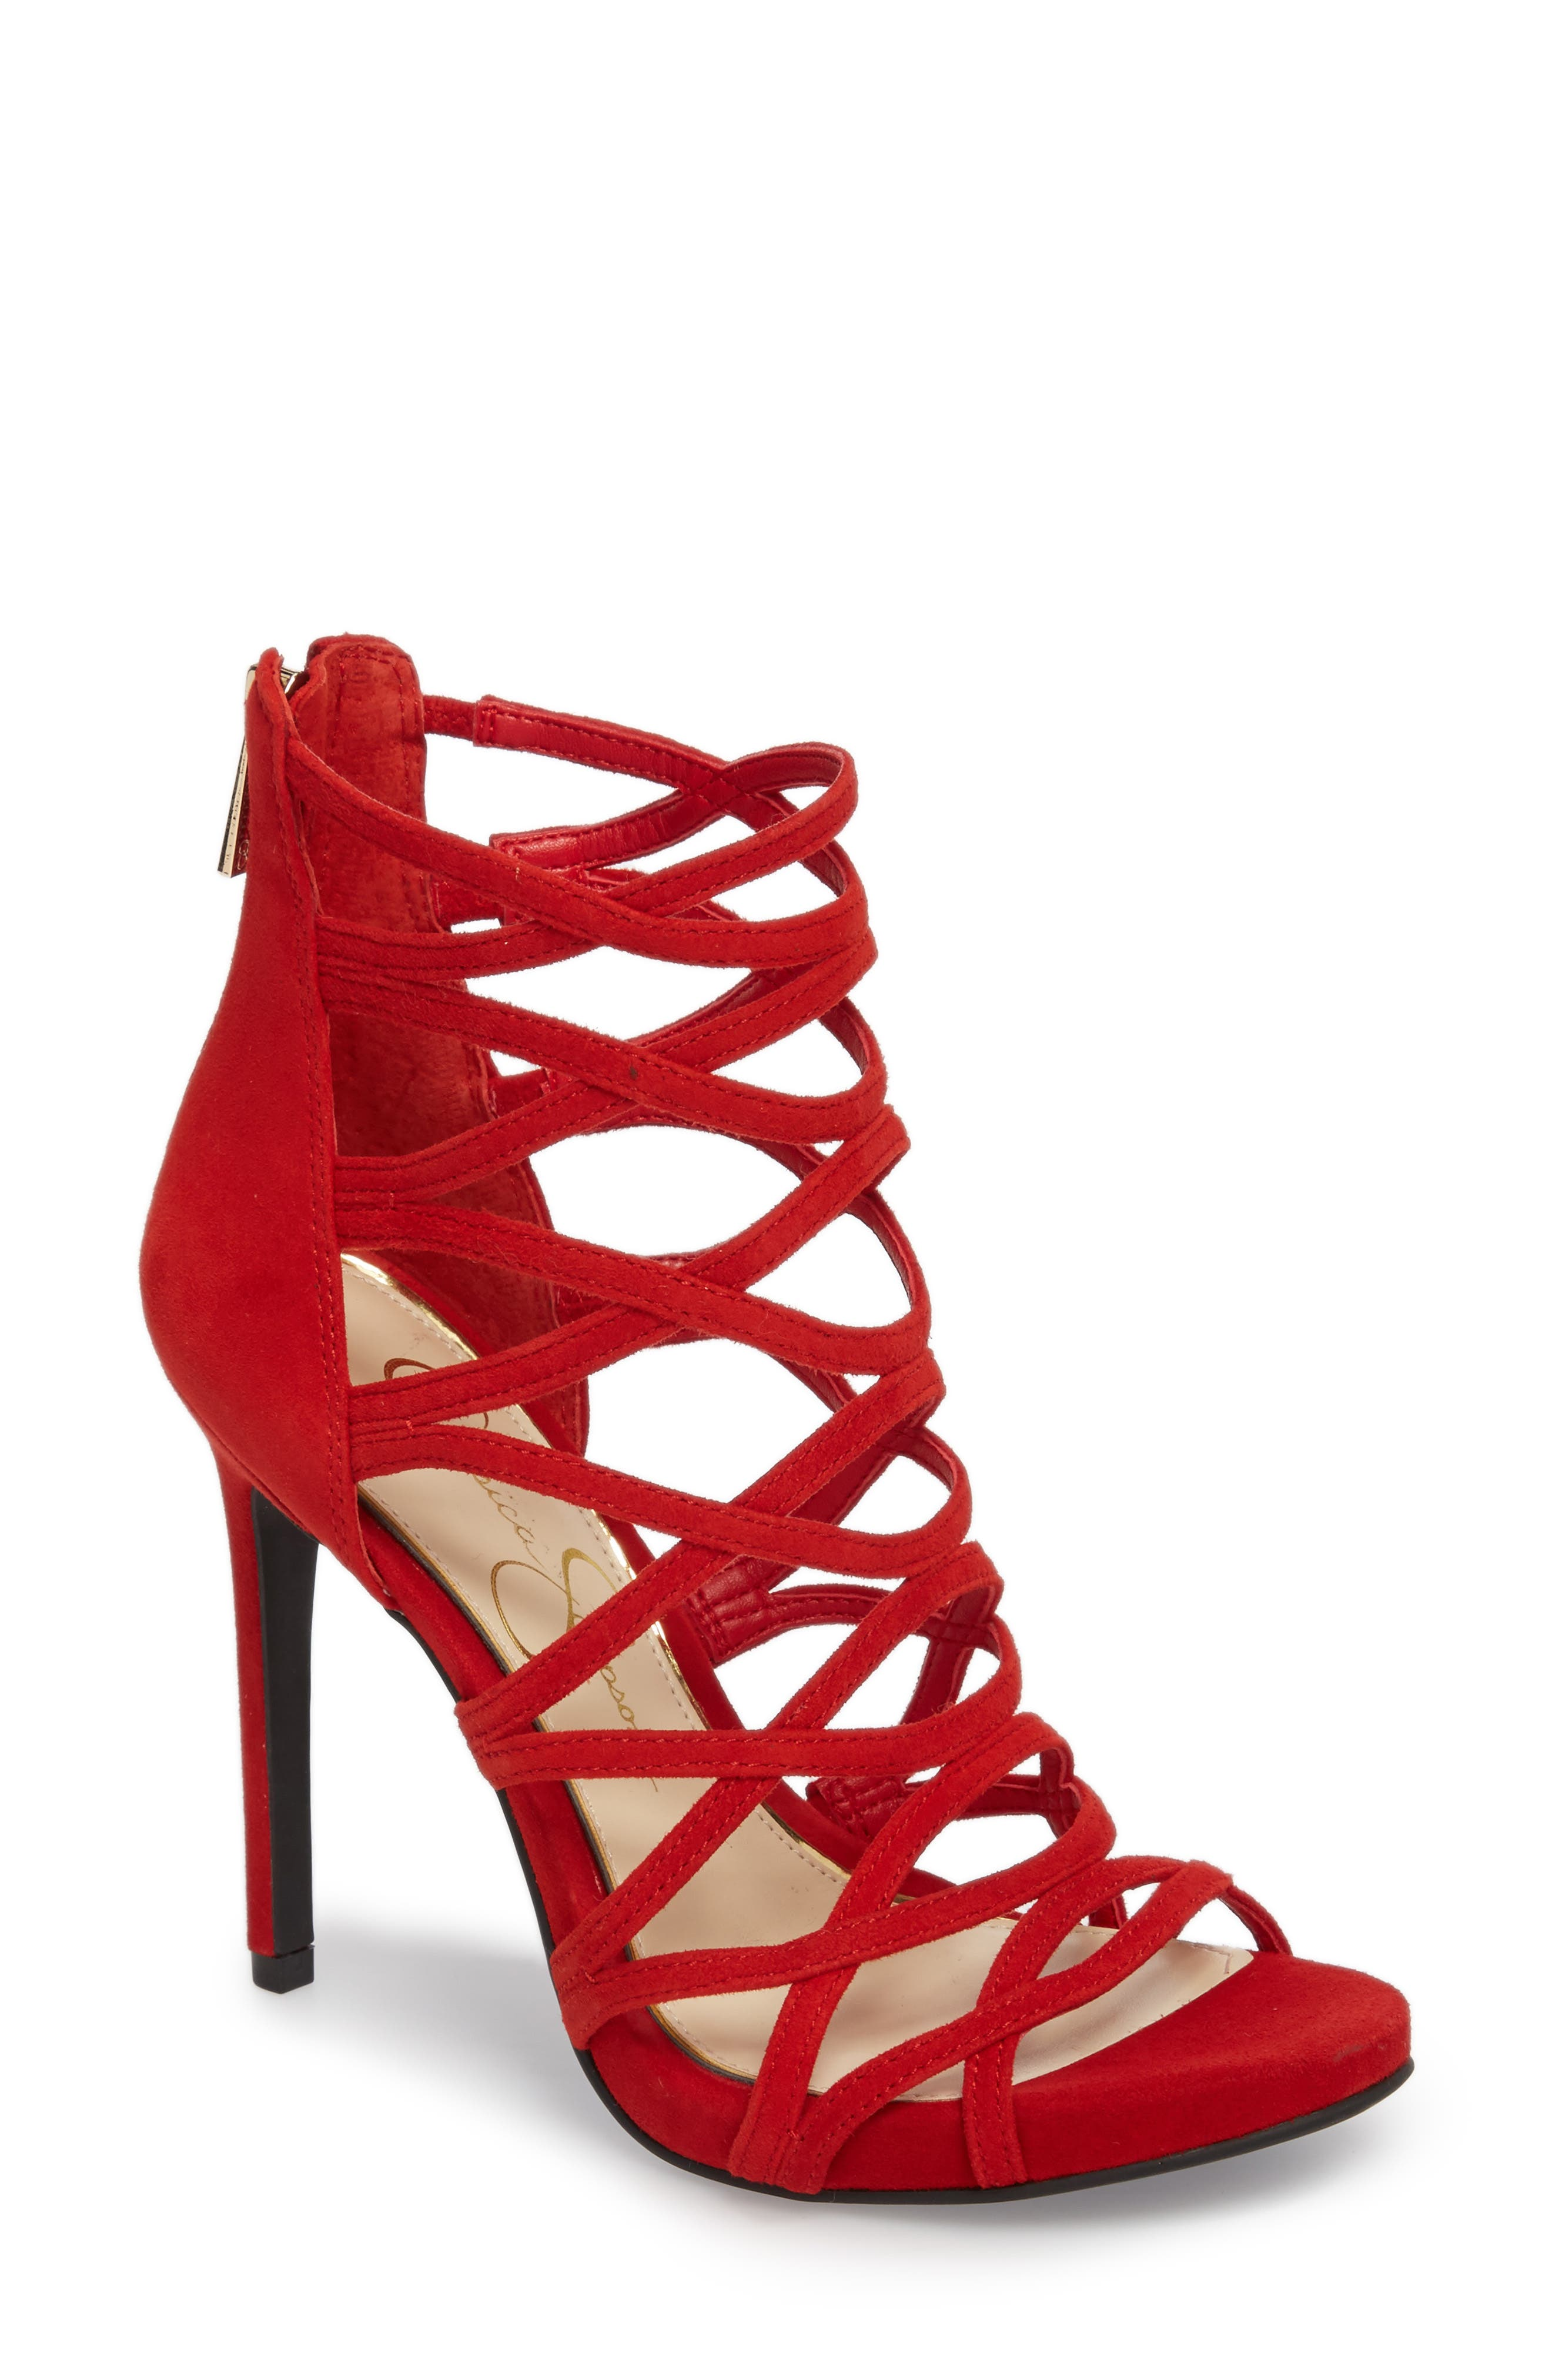 Razella Cage Sandal,                         Main,                         color, Red Muse Suede